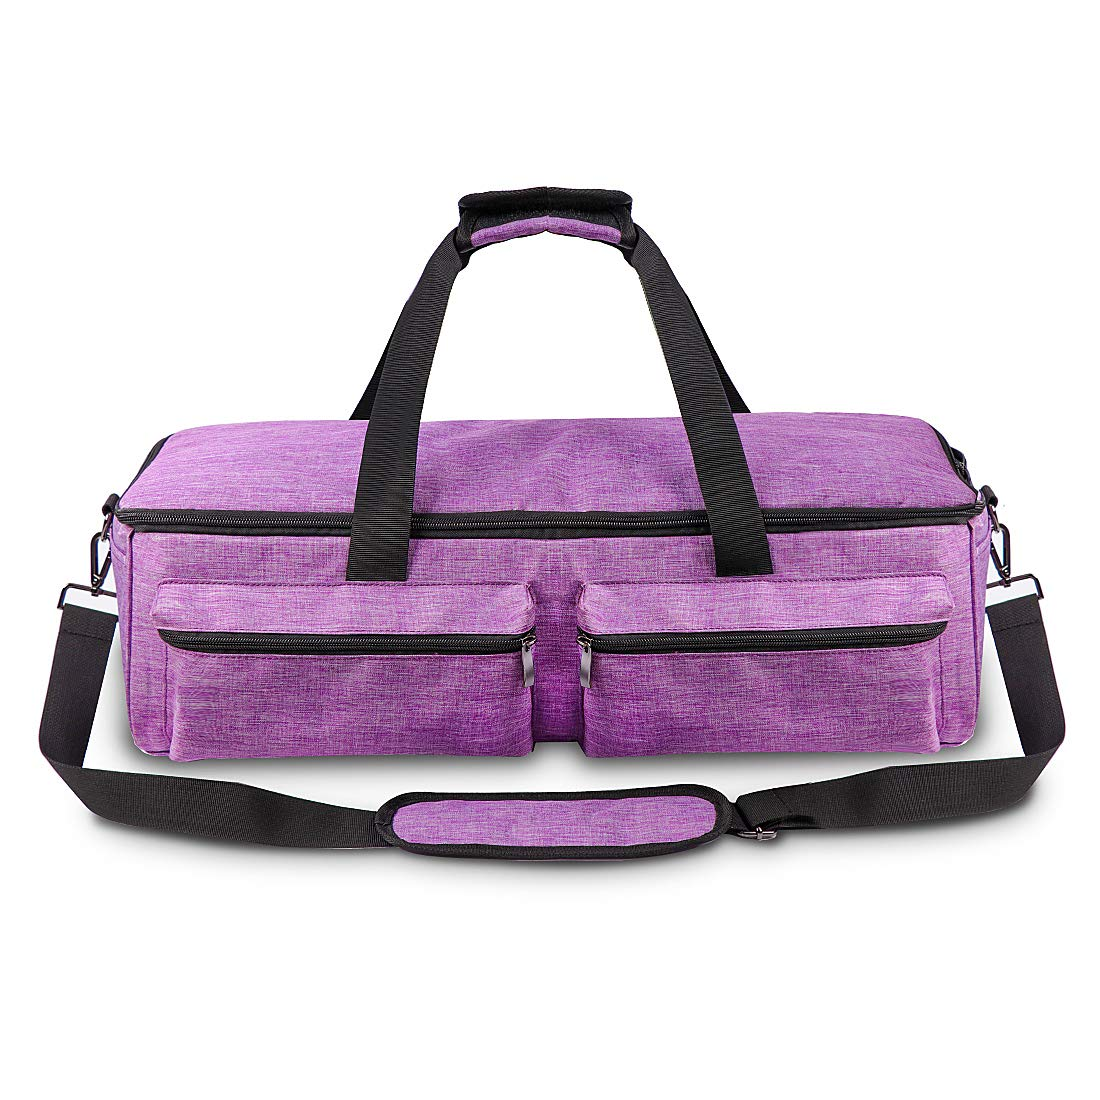 Cricut Explore Air Carrying Bag,Tote Bag Compatible with Cricut Explore Air 2,Cricut Maker,Silhouette and Supplies,No Accessories Included Purple